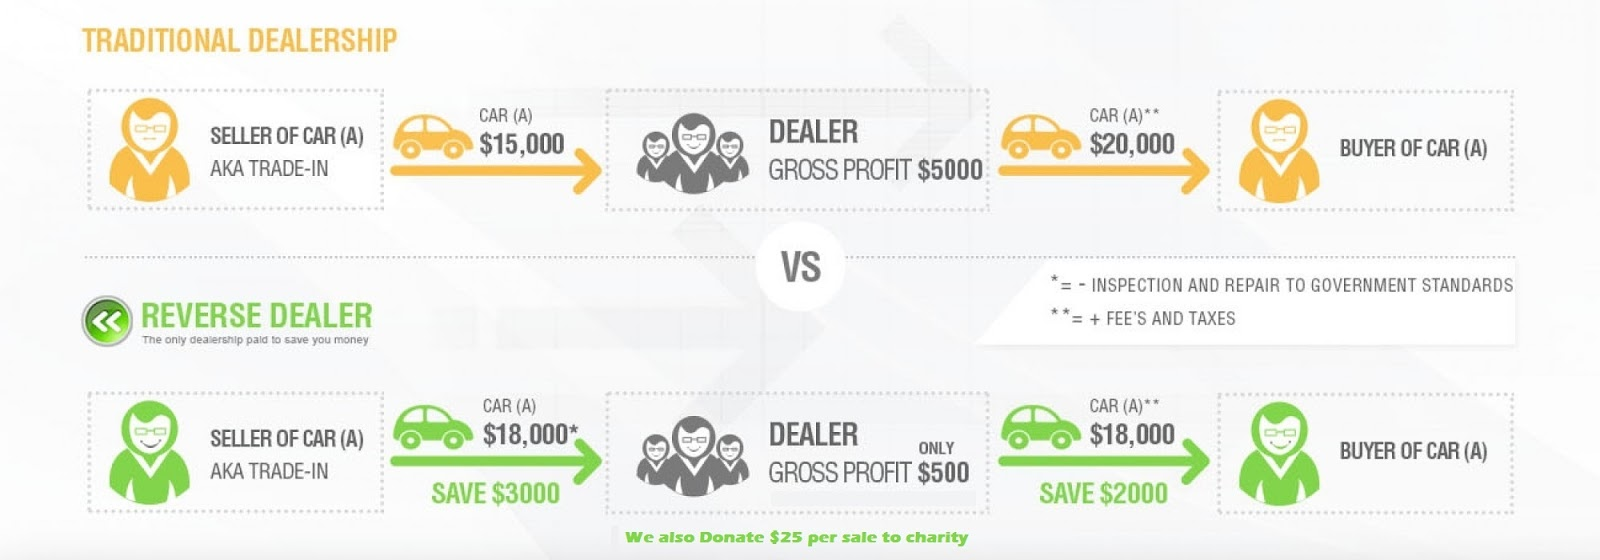 Used car dealership - reverse dealer, red deer, AB